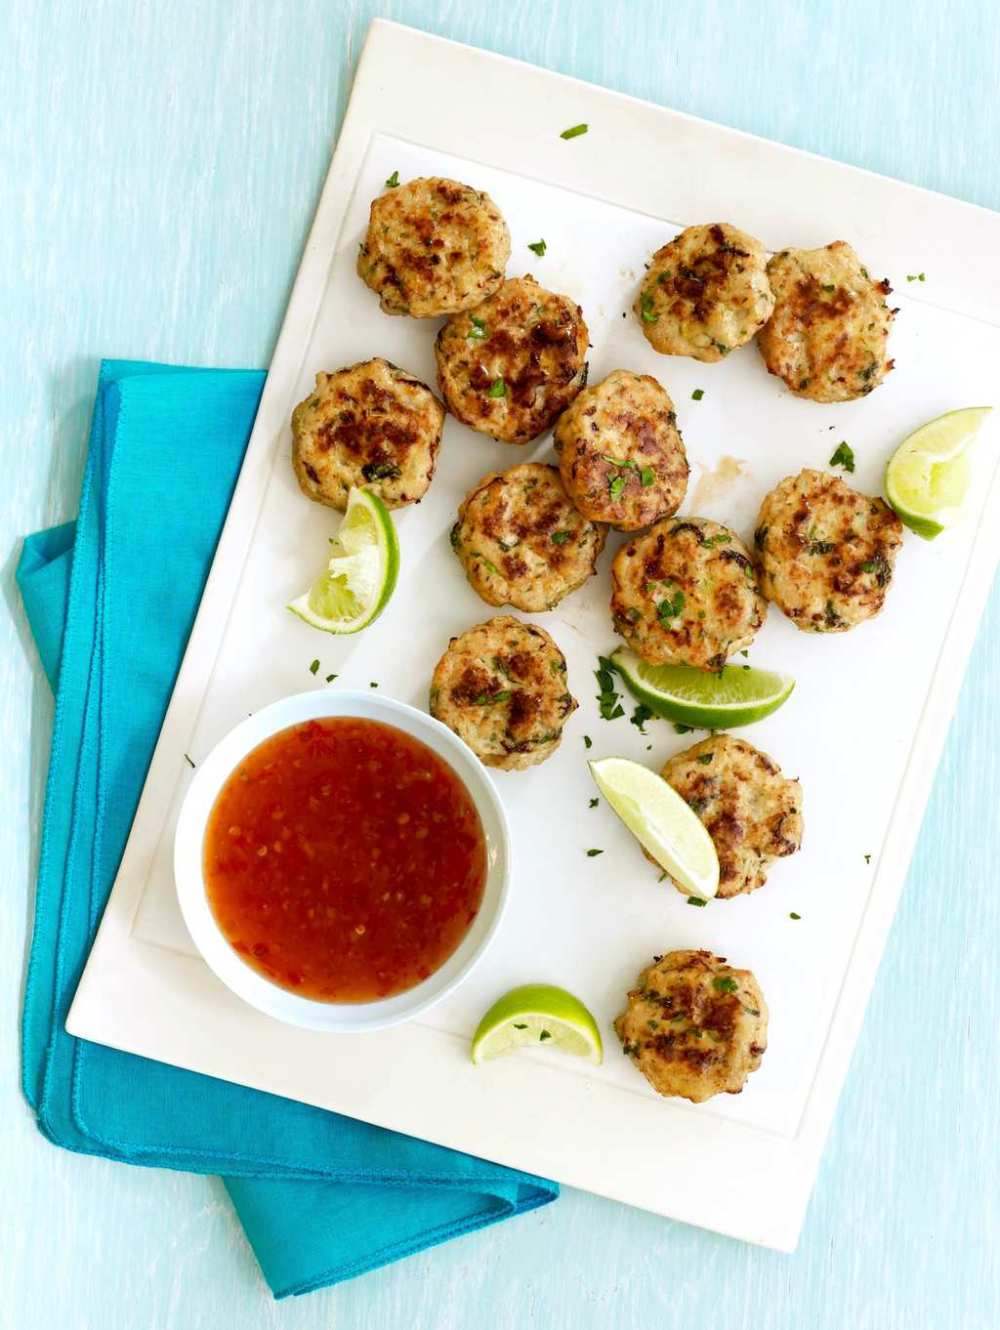 Ginger and a little fish sauce give these tasty chicken bites authentic flavor.